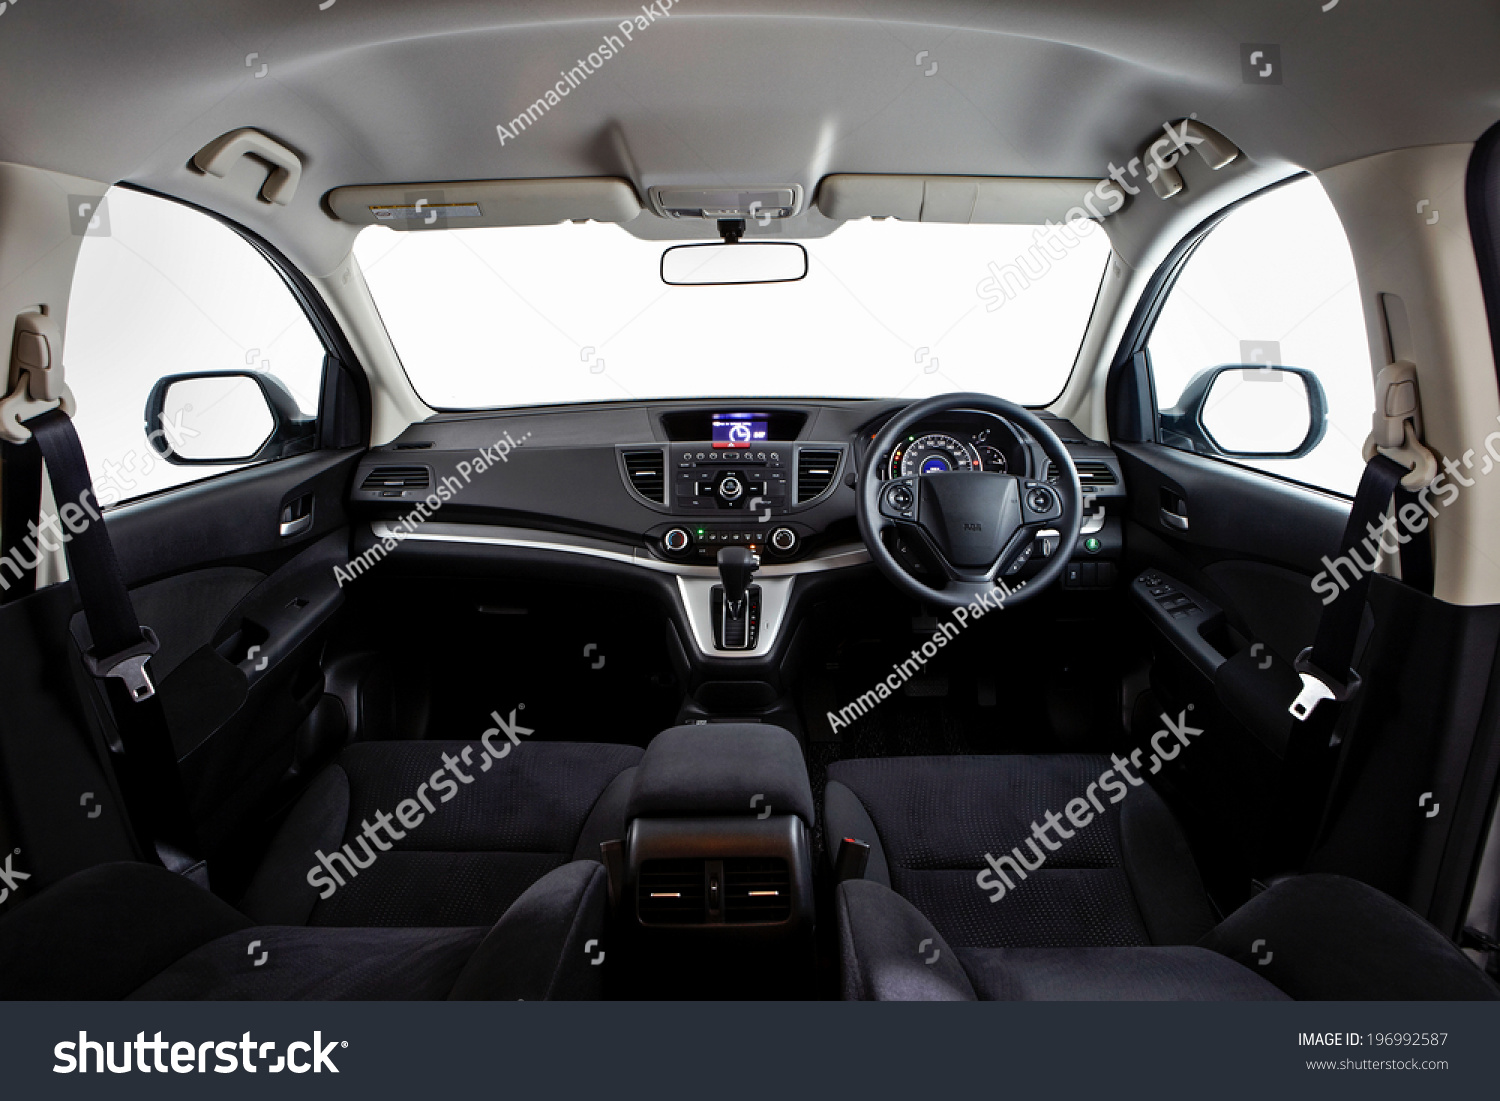 Dashboard Car Interior Illustration Stock Photo - Car image sign of dashboardcar dashboard icons stock photospictures royalty free car